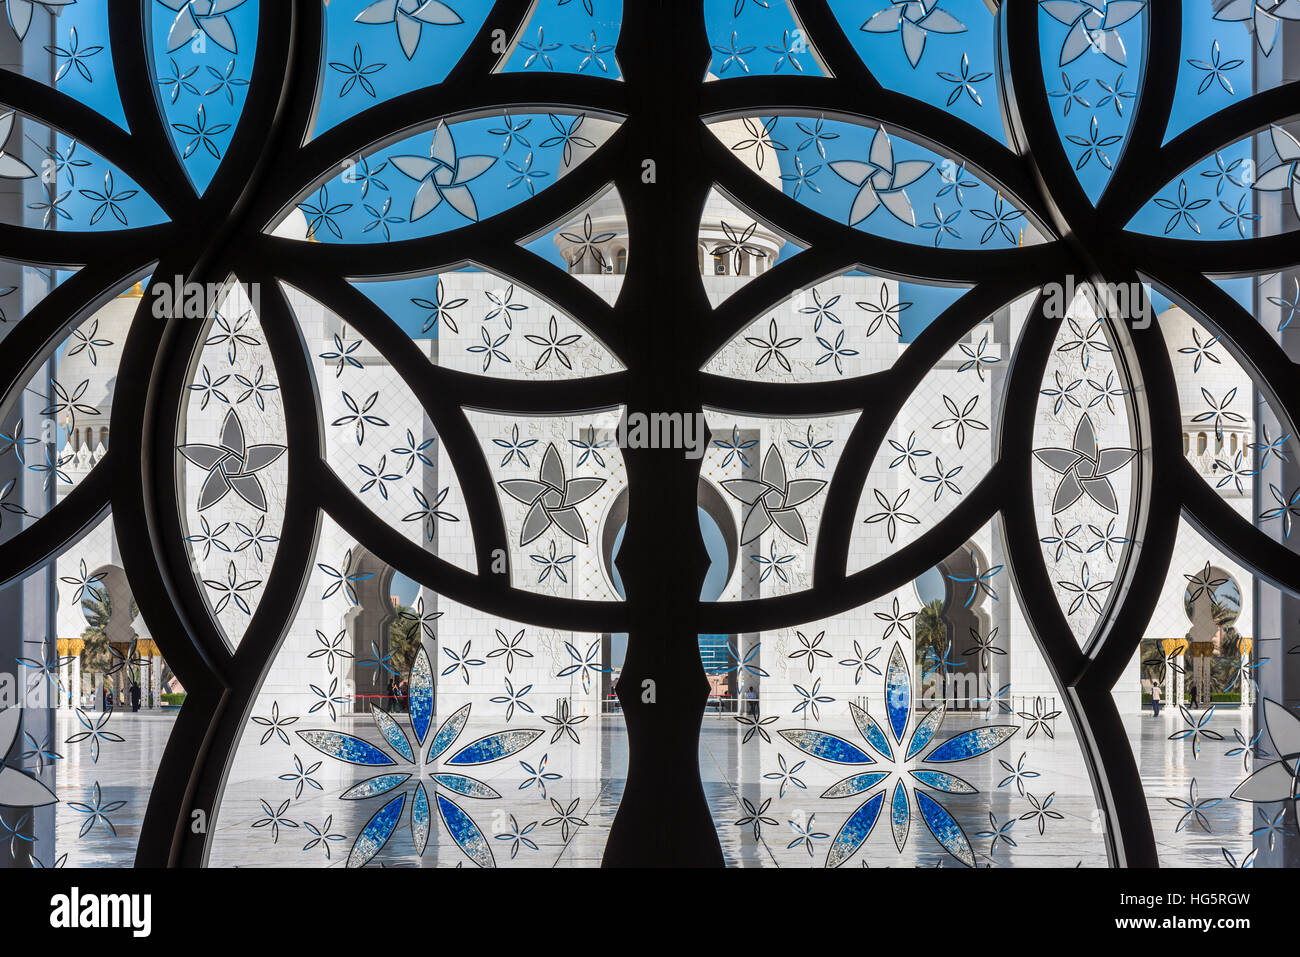 Inner courtyard of Sheikh Zayed Mosque seen through an interior decorated glass, Abu Dhabi, United Arab Emirates - Stock Image